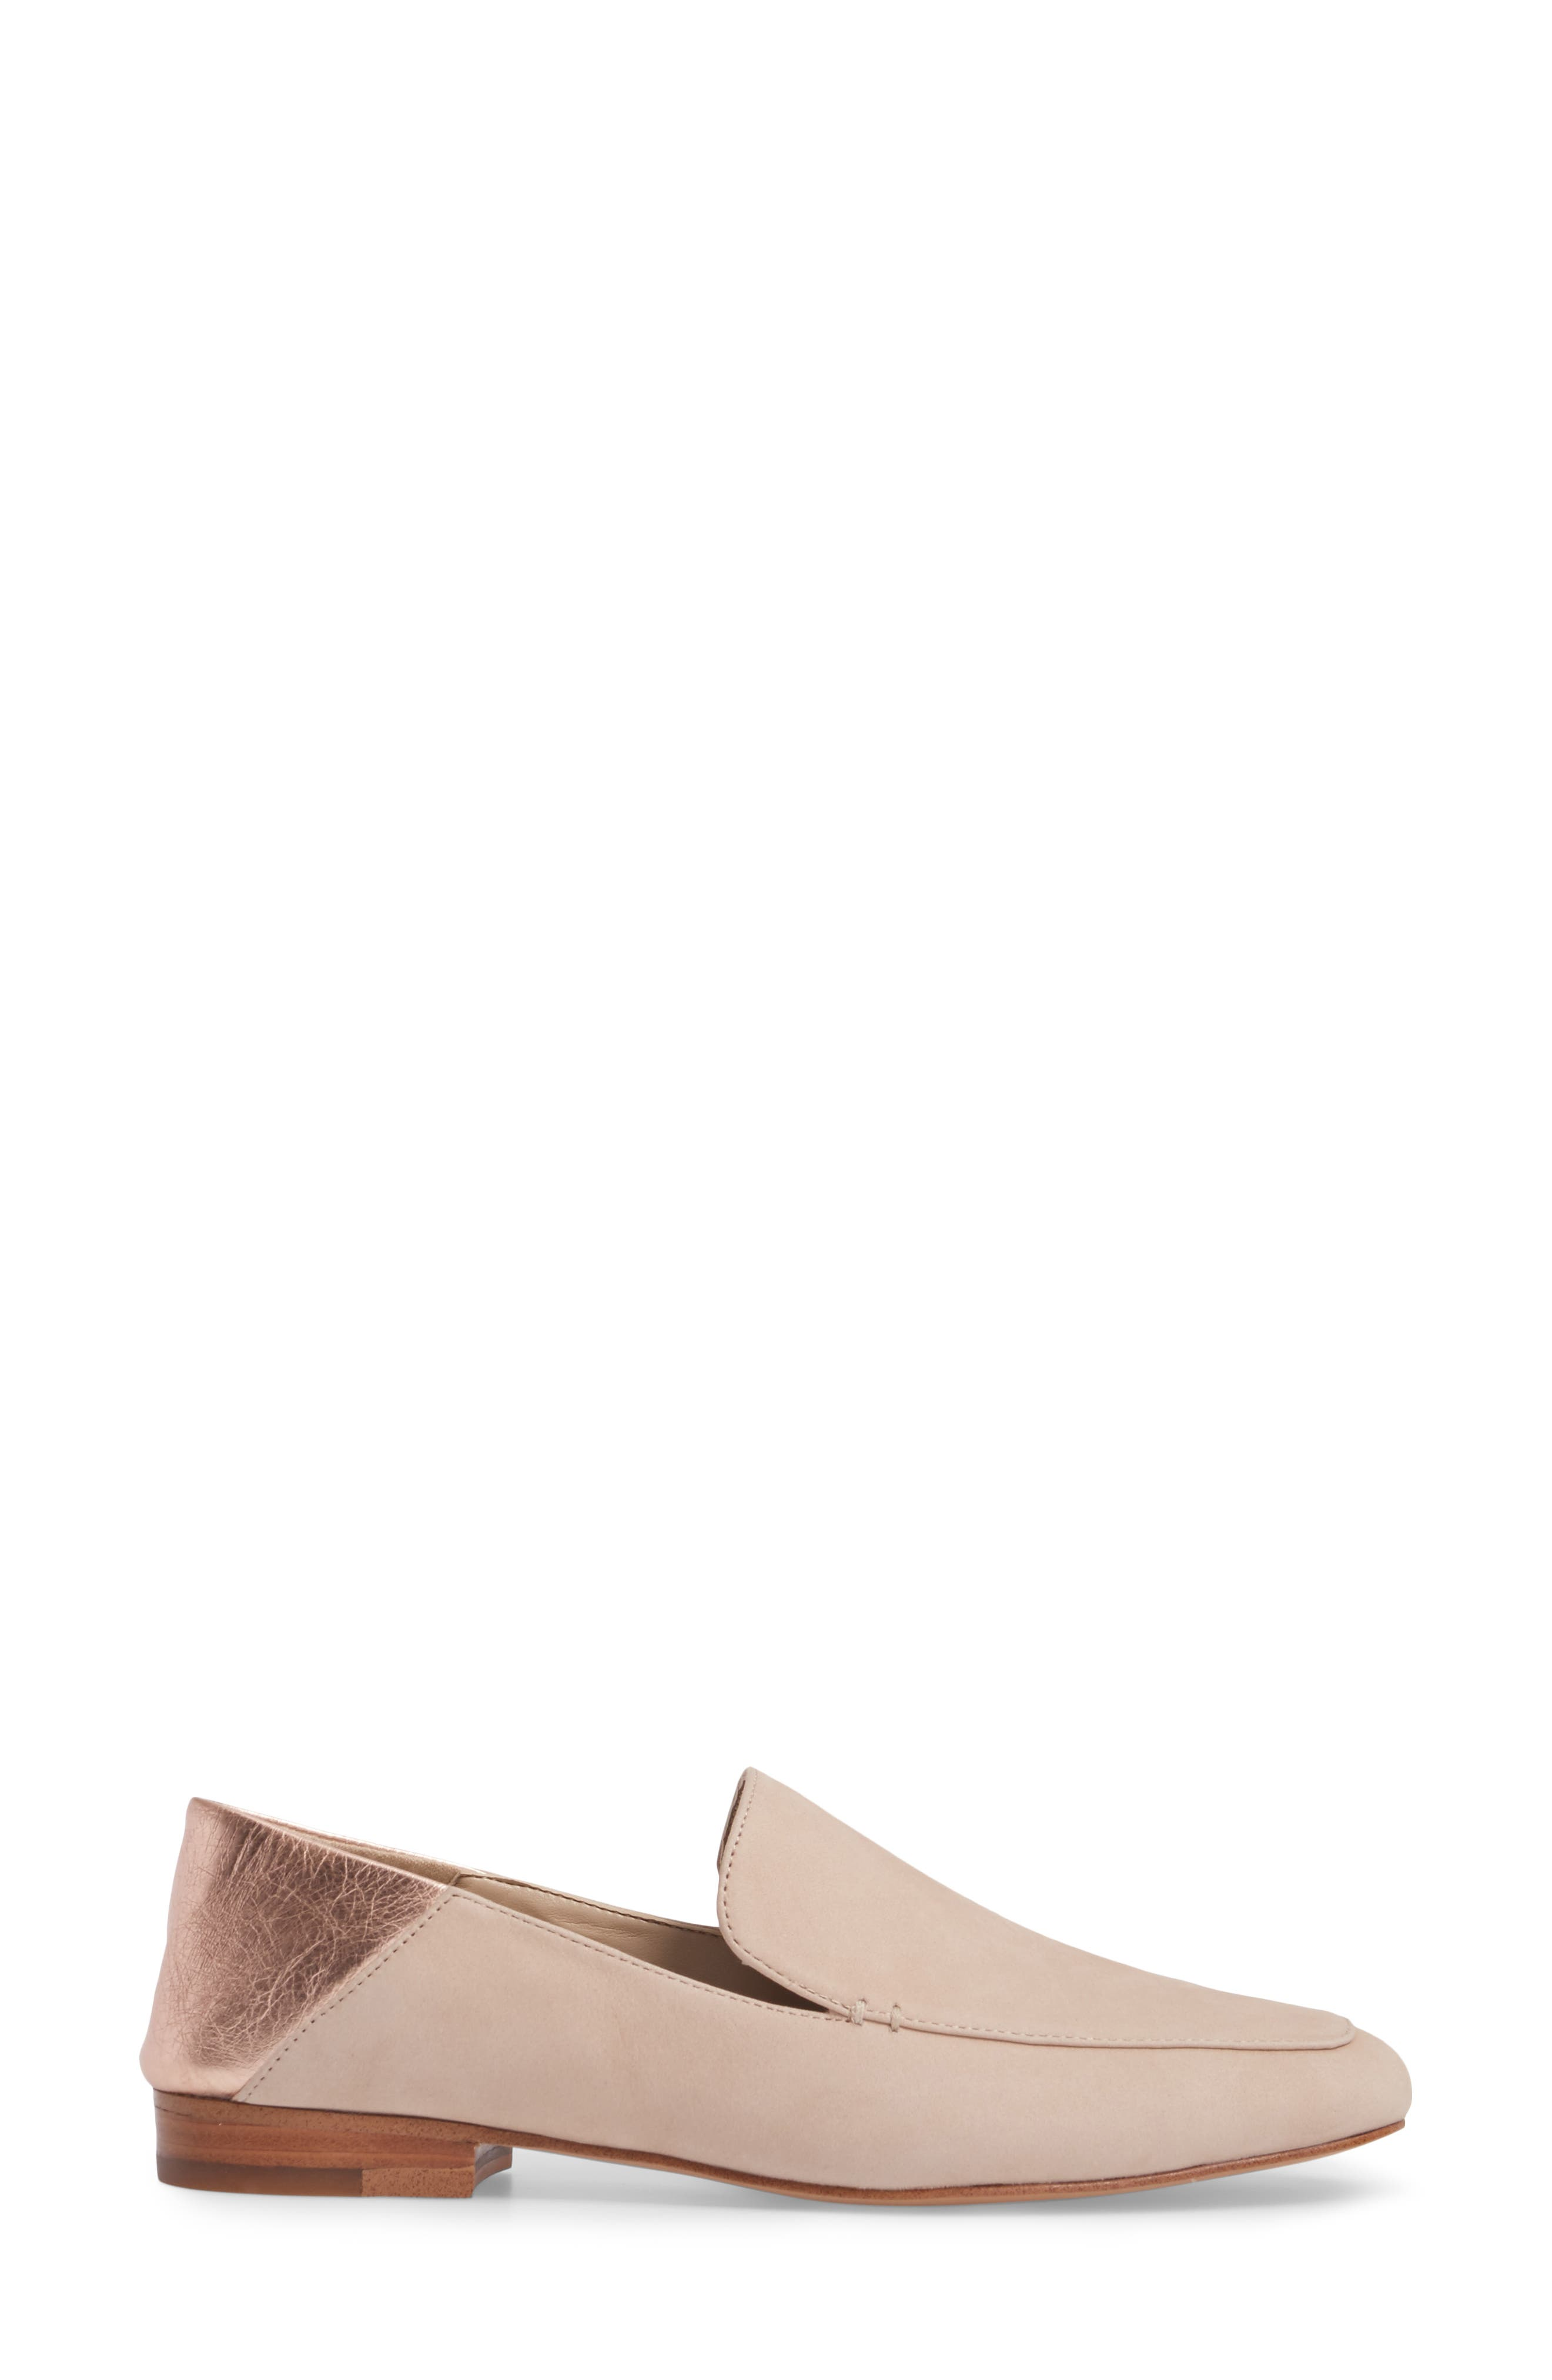 Faun Drop Heel Loafer,                             Alternate thumbnail 4, color,                             Cipria Leather